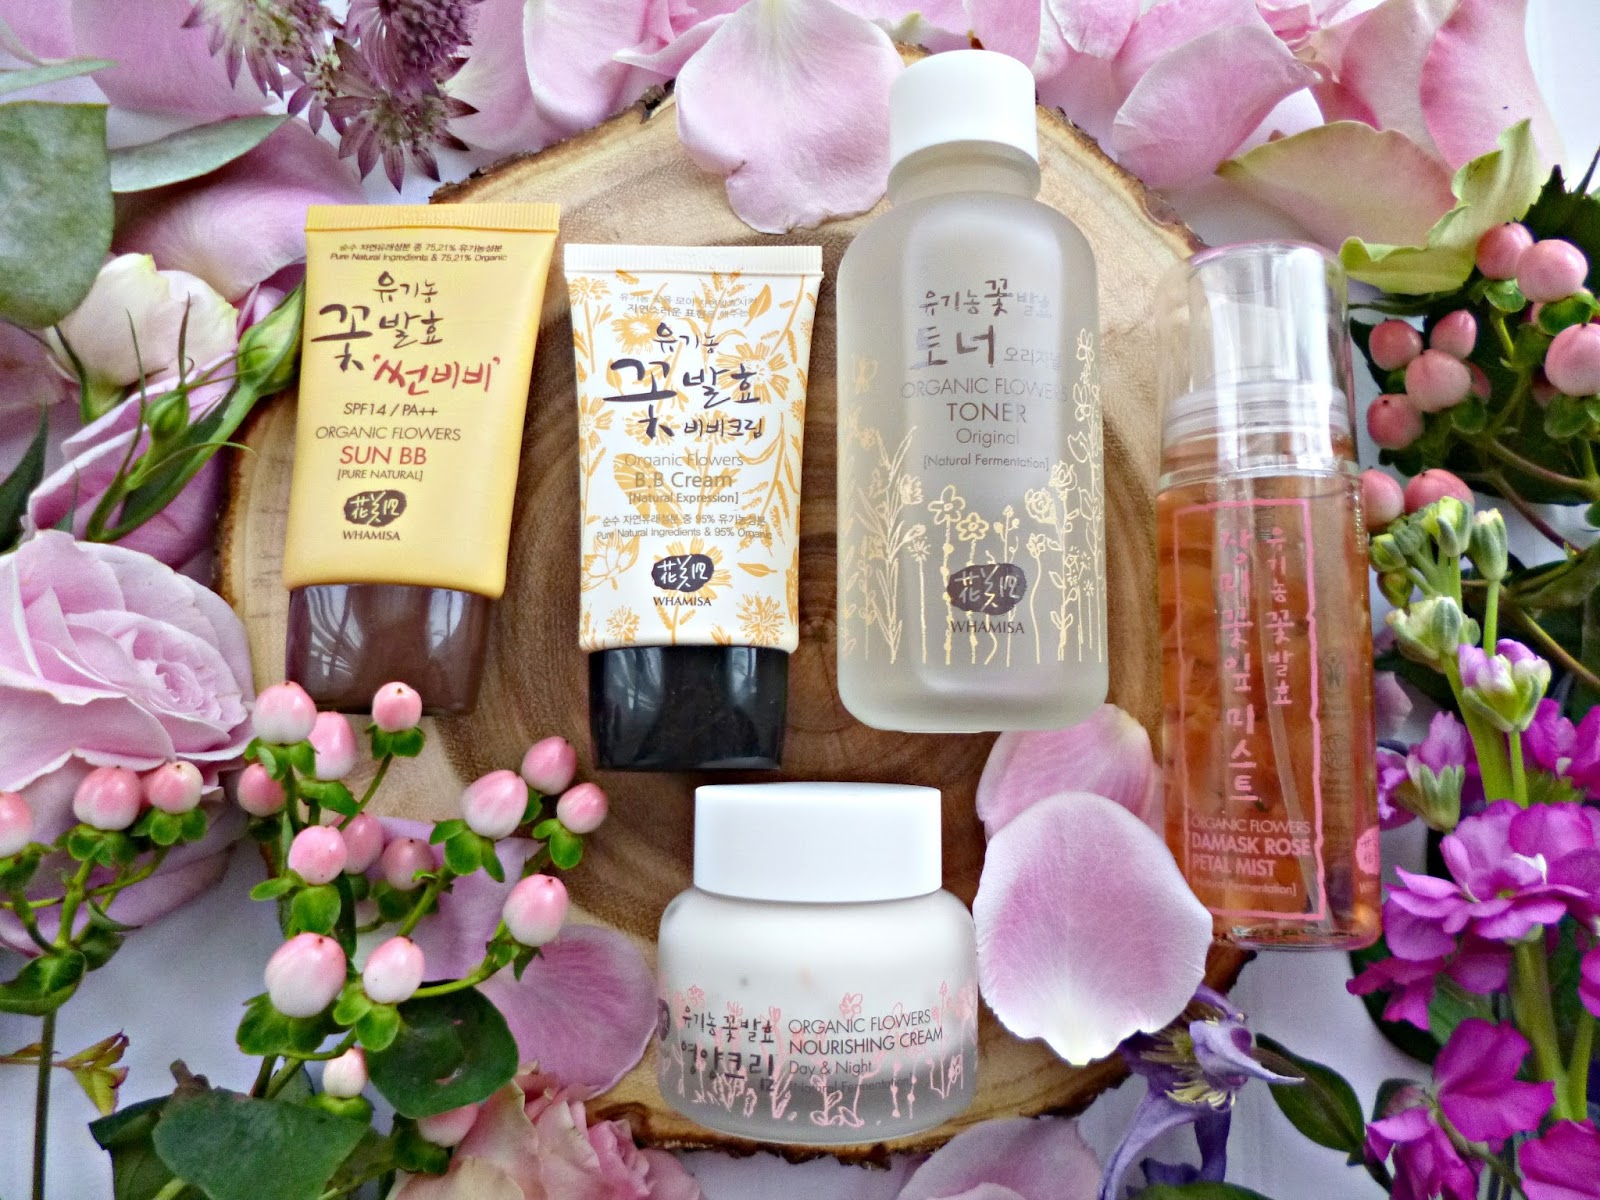 New in: Korean natural skincare from Whamisa